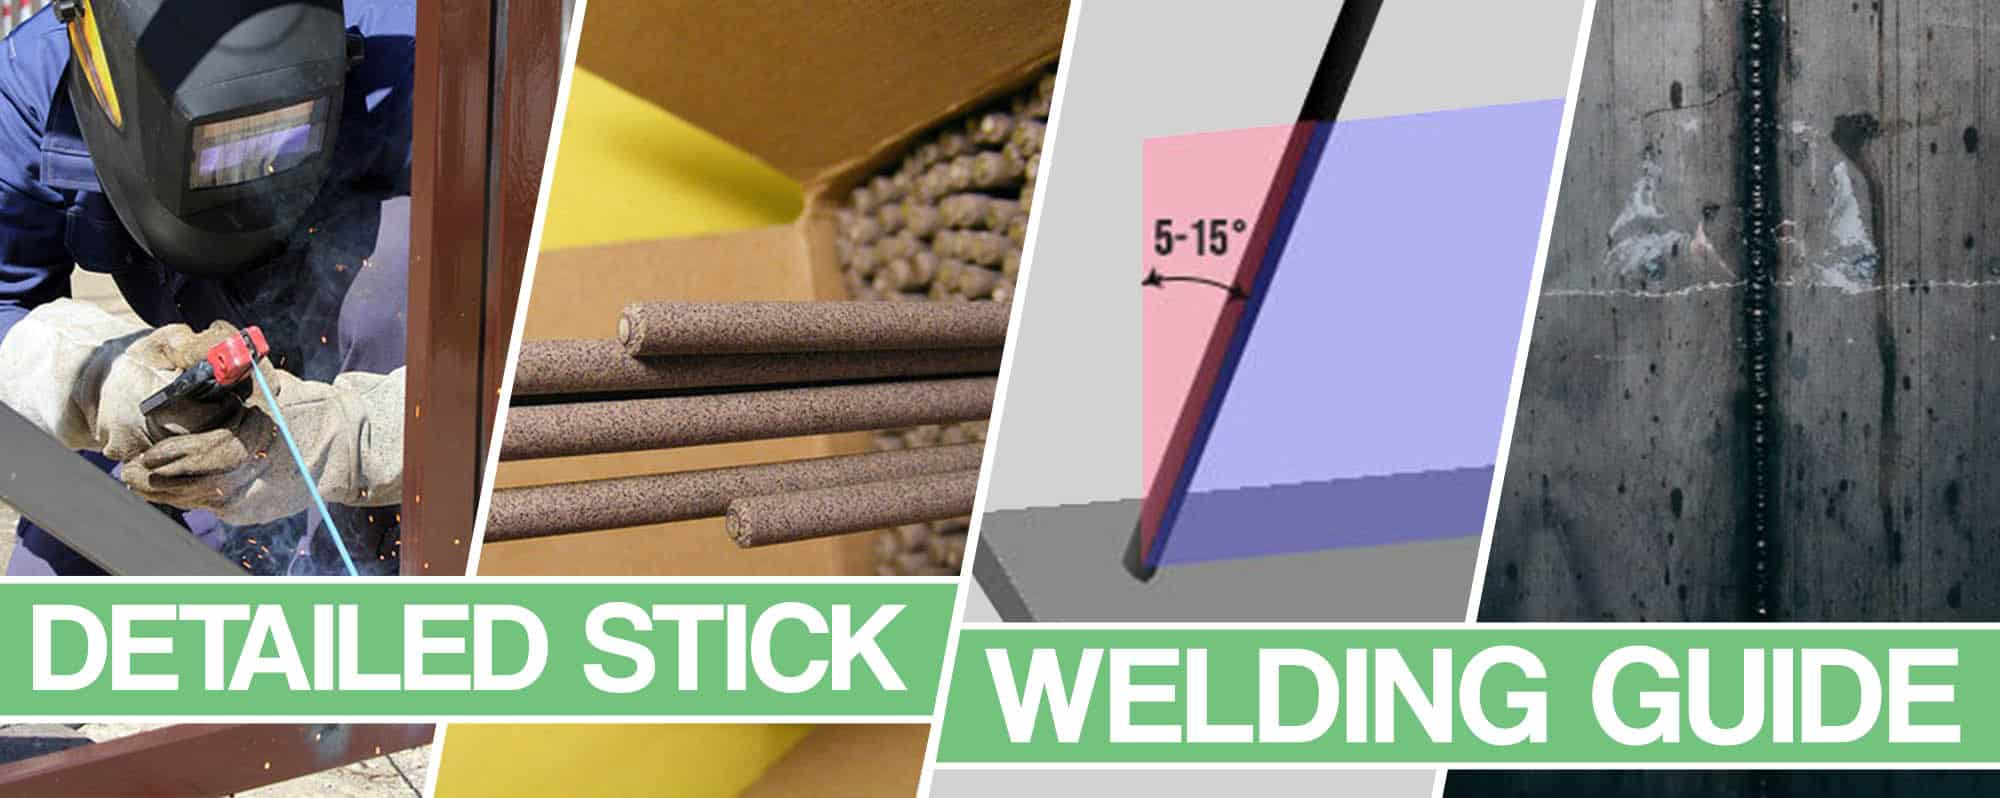 image showing how to stick weld